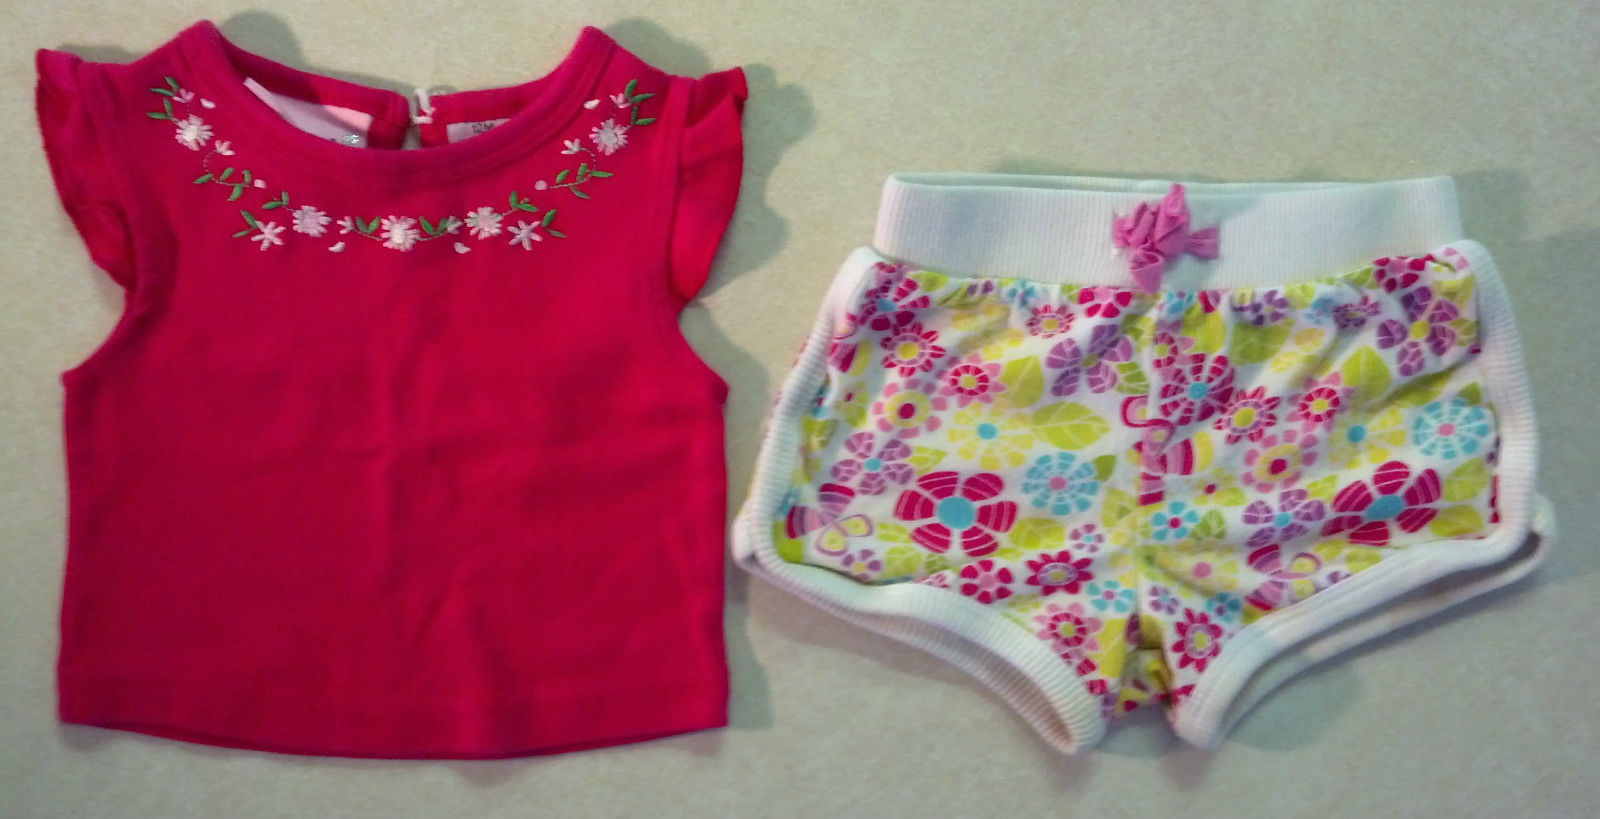 a51aae46b S l1600. S l1600. Previous. Cute Girl's Size 12 M Months 2 Piece Outfit Pink  Floral Embroidered Top & Shorts